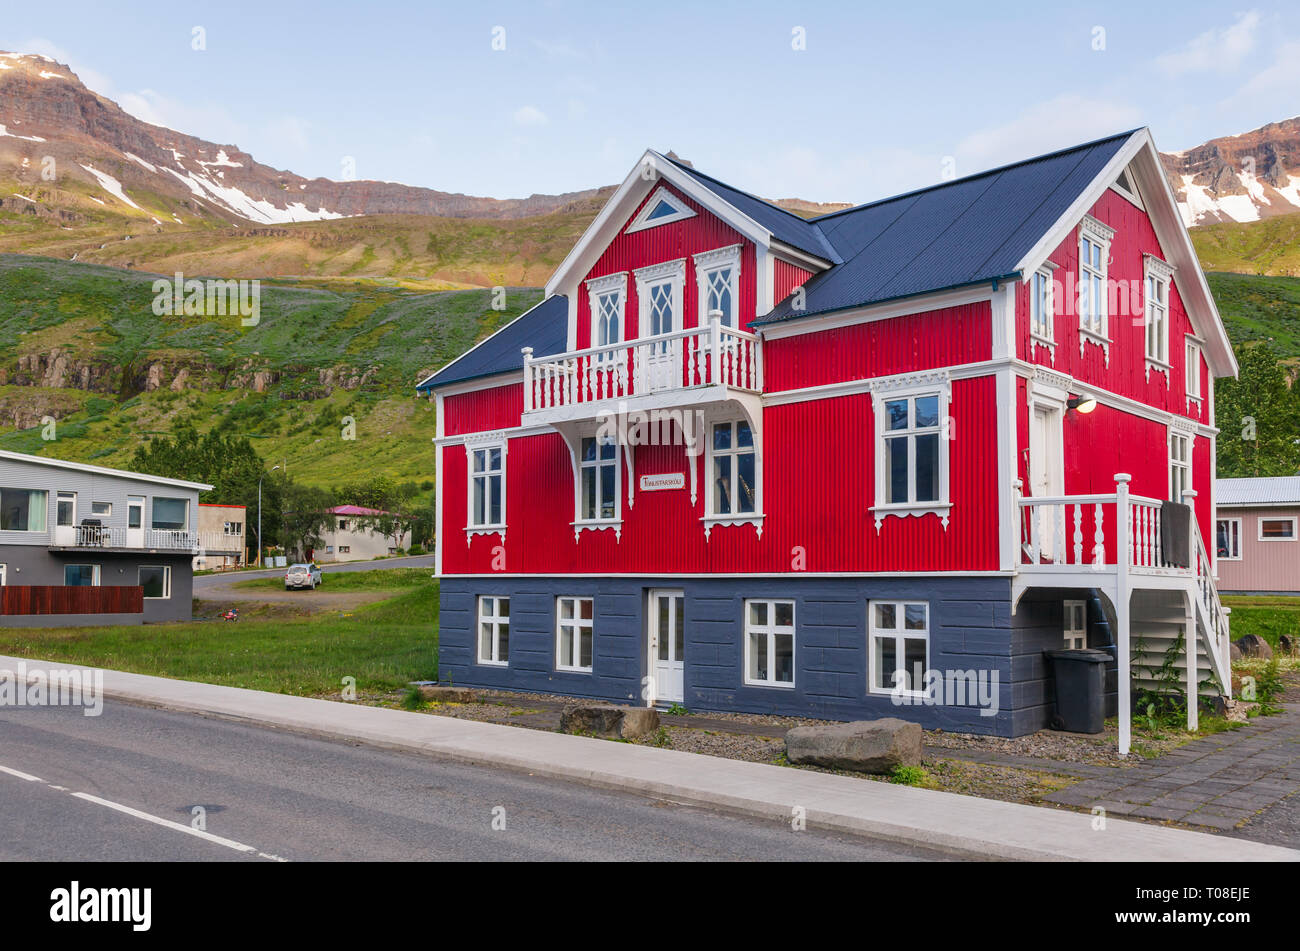 Seydisfjordur, Iceland - Aug 1, 2015: White and red building of music school on Austurvegur street - Stock Image